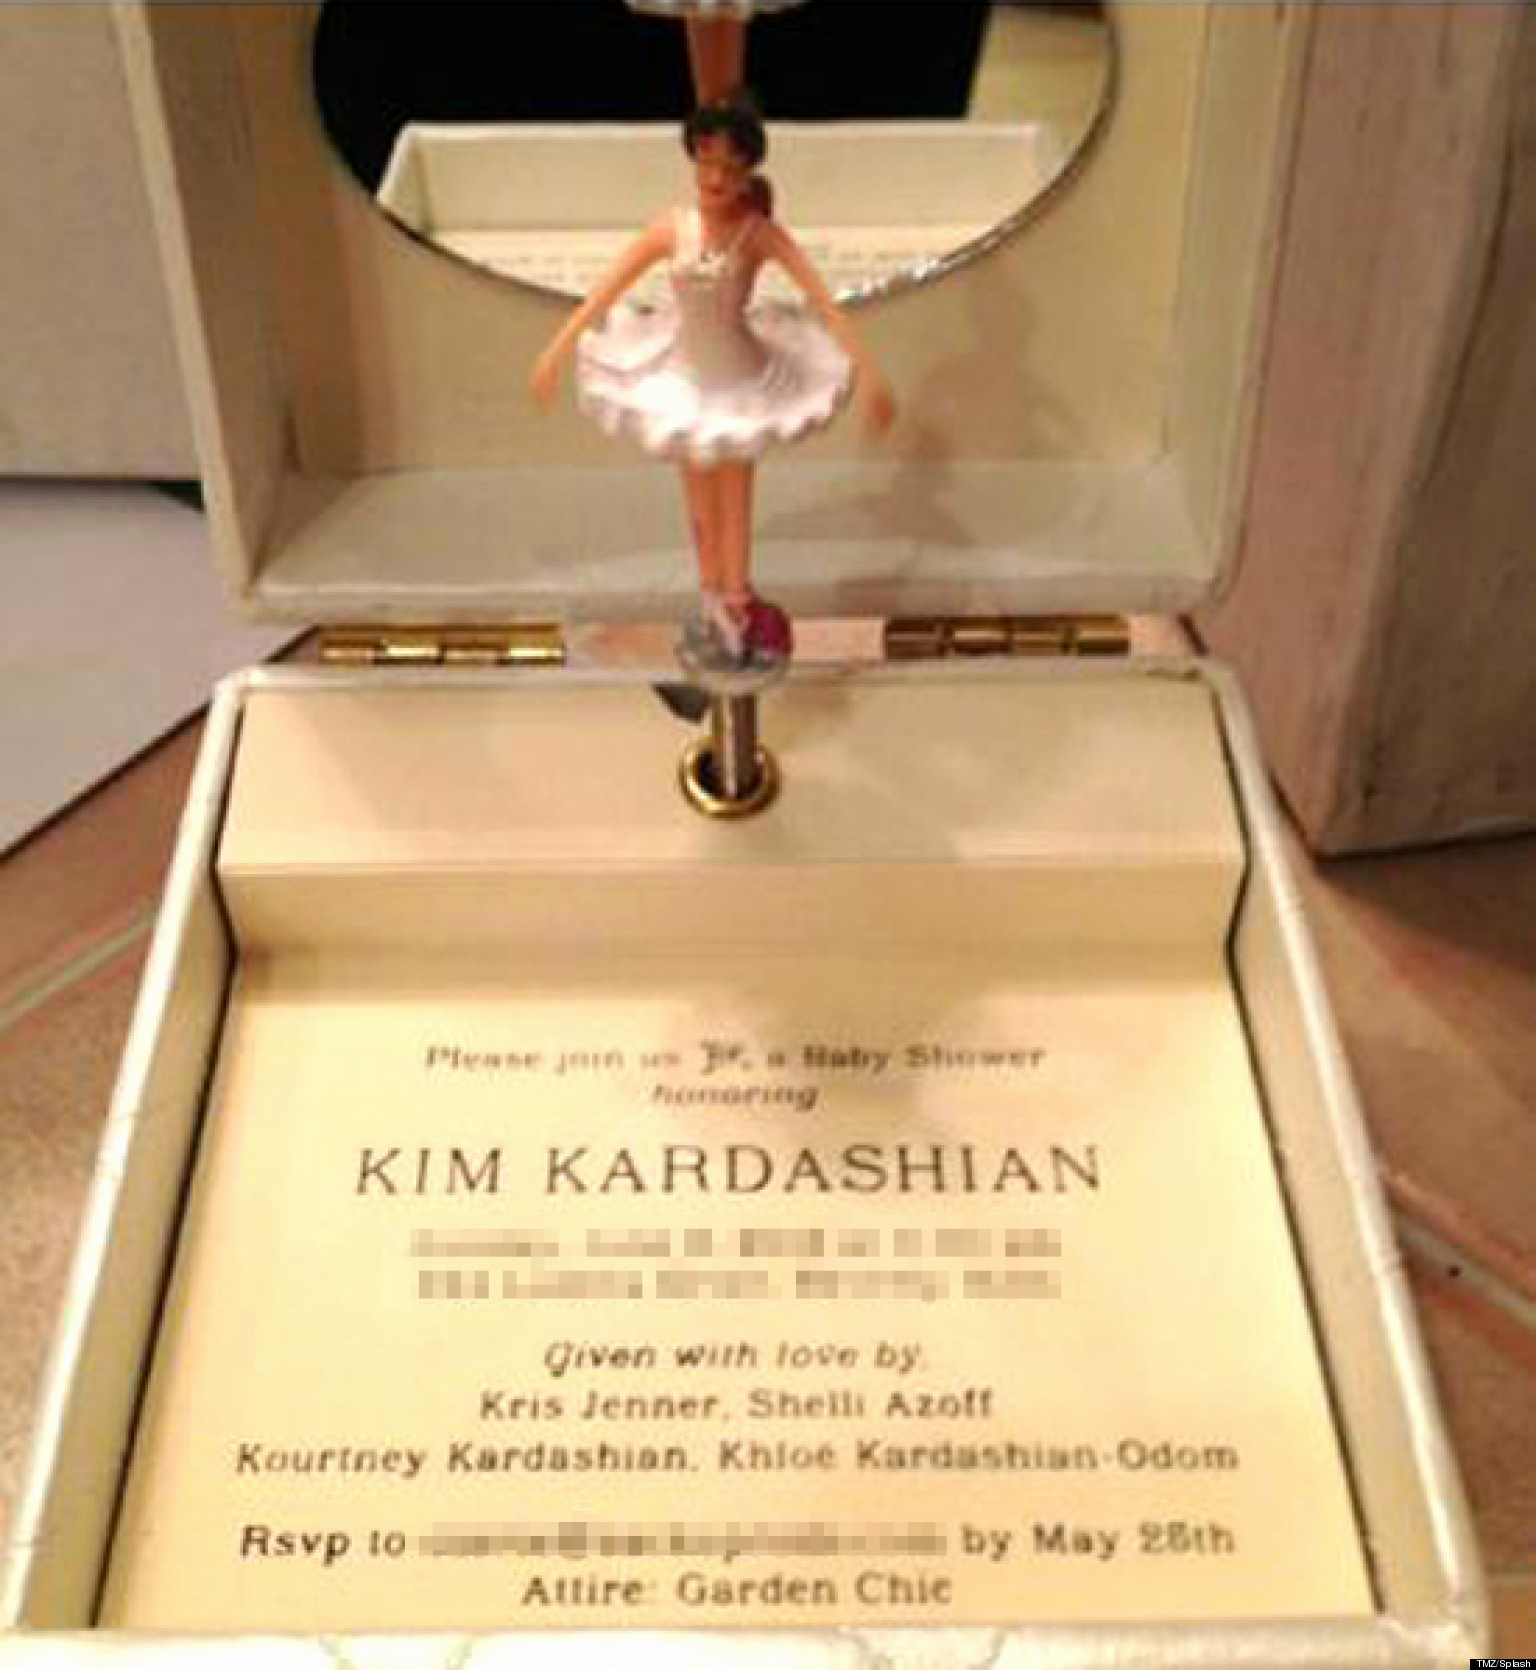 Kim Kardashian Wedding Invitation Best Of Kim Kardashian S Baby Shower Invite is the Most Over the